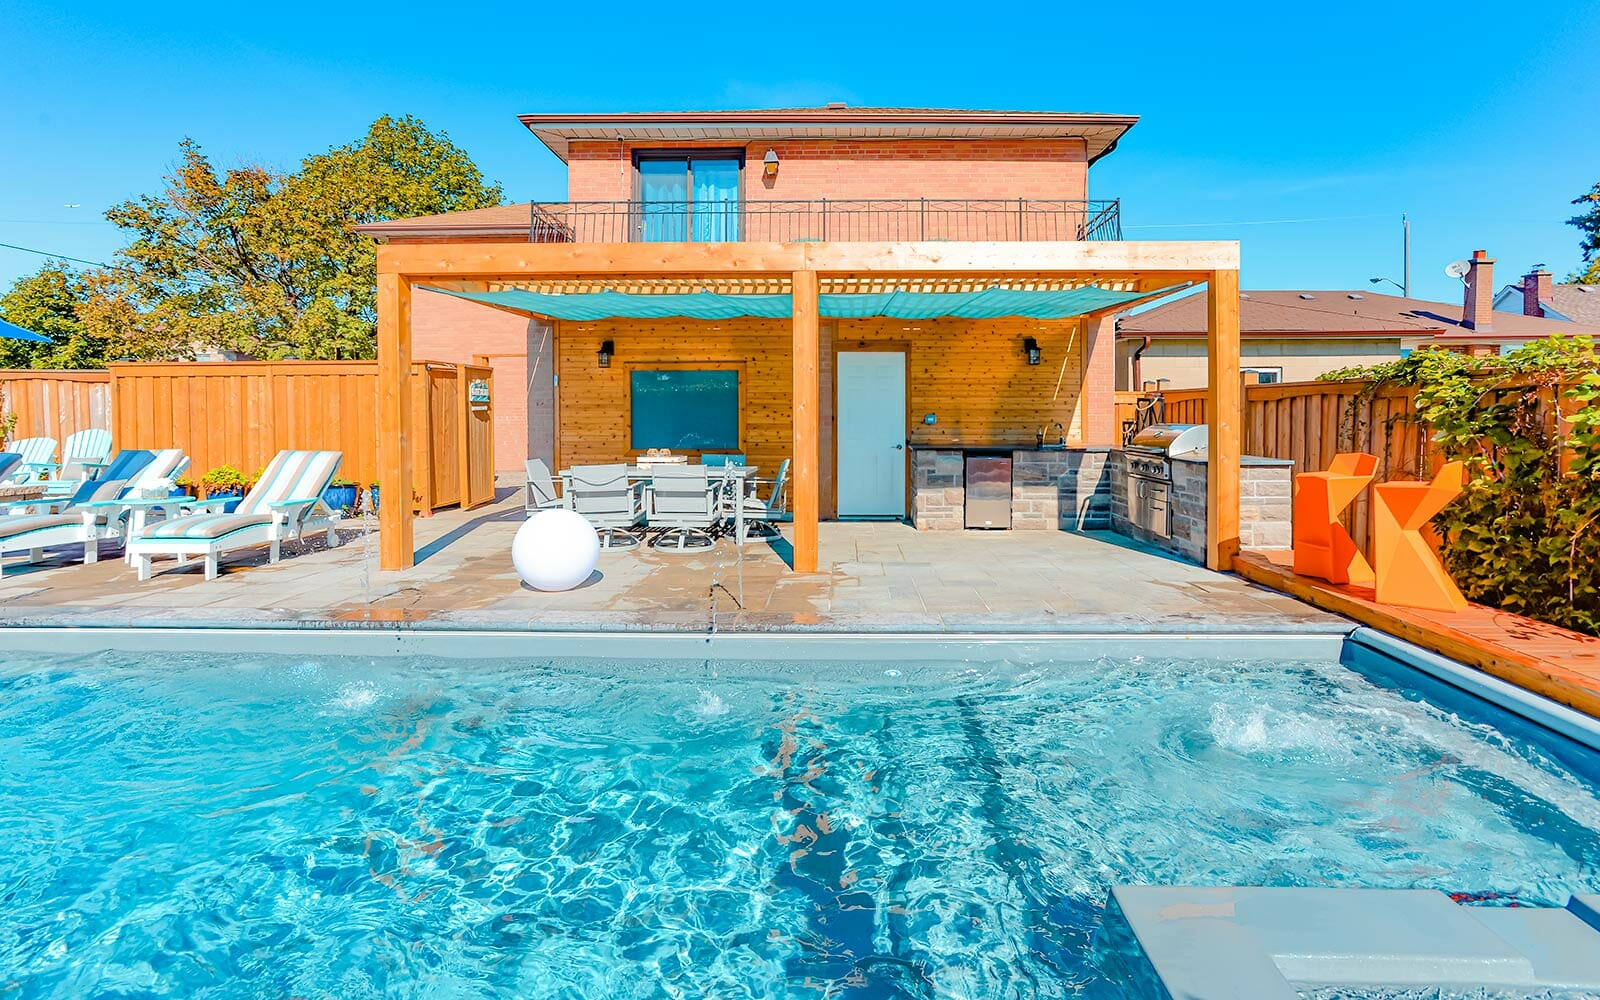 Toronto Landscape Design & Pool Construction Project with Woodworking Pergola, Water Features, Interlocking & Outdoor Firepit by The Toronto Landscaping Company.